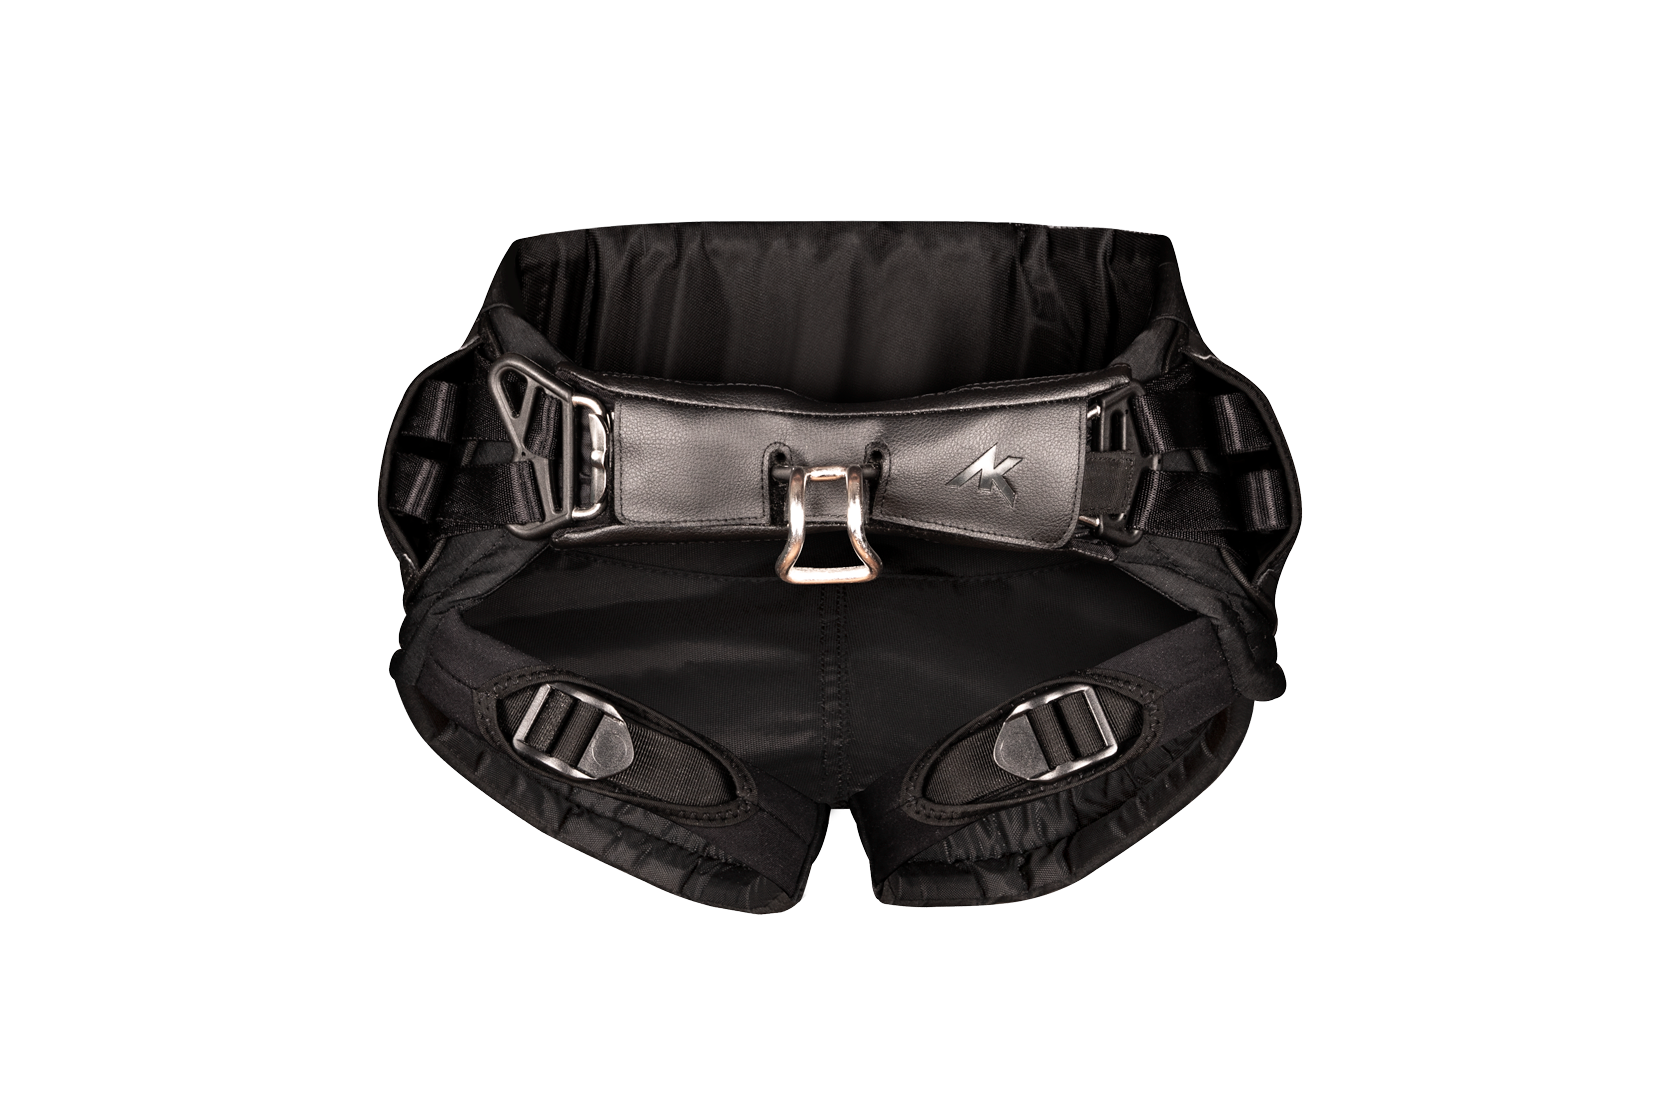 AK_Ether-Seat-Harness-2